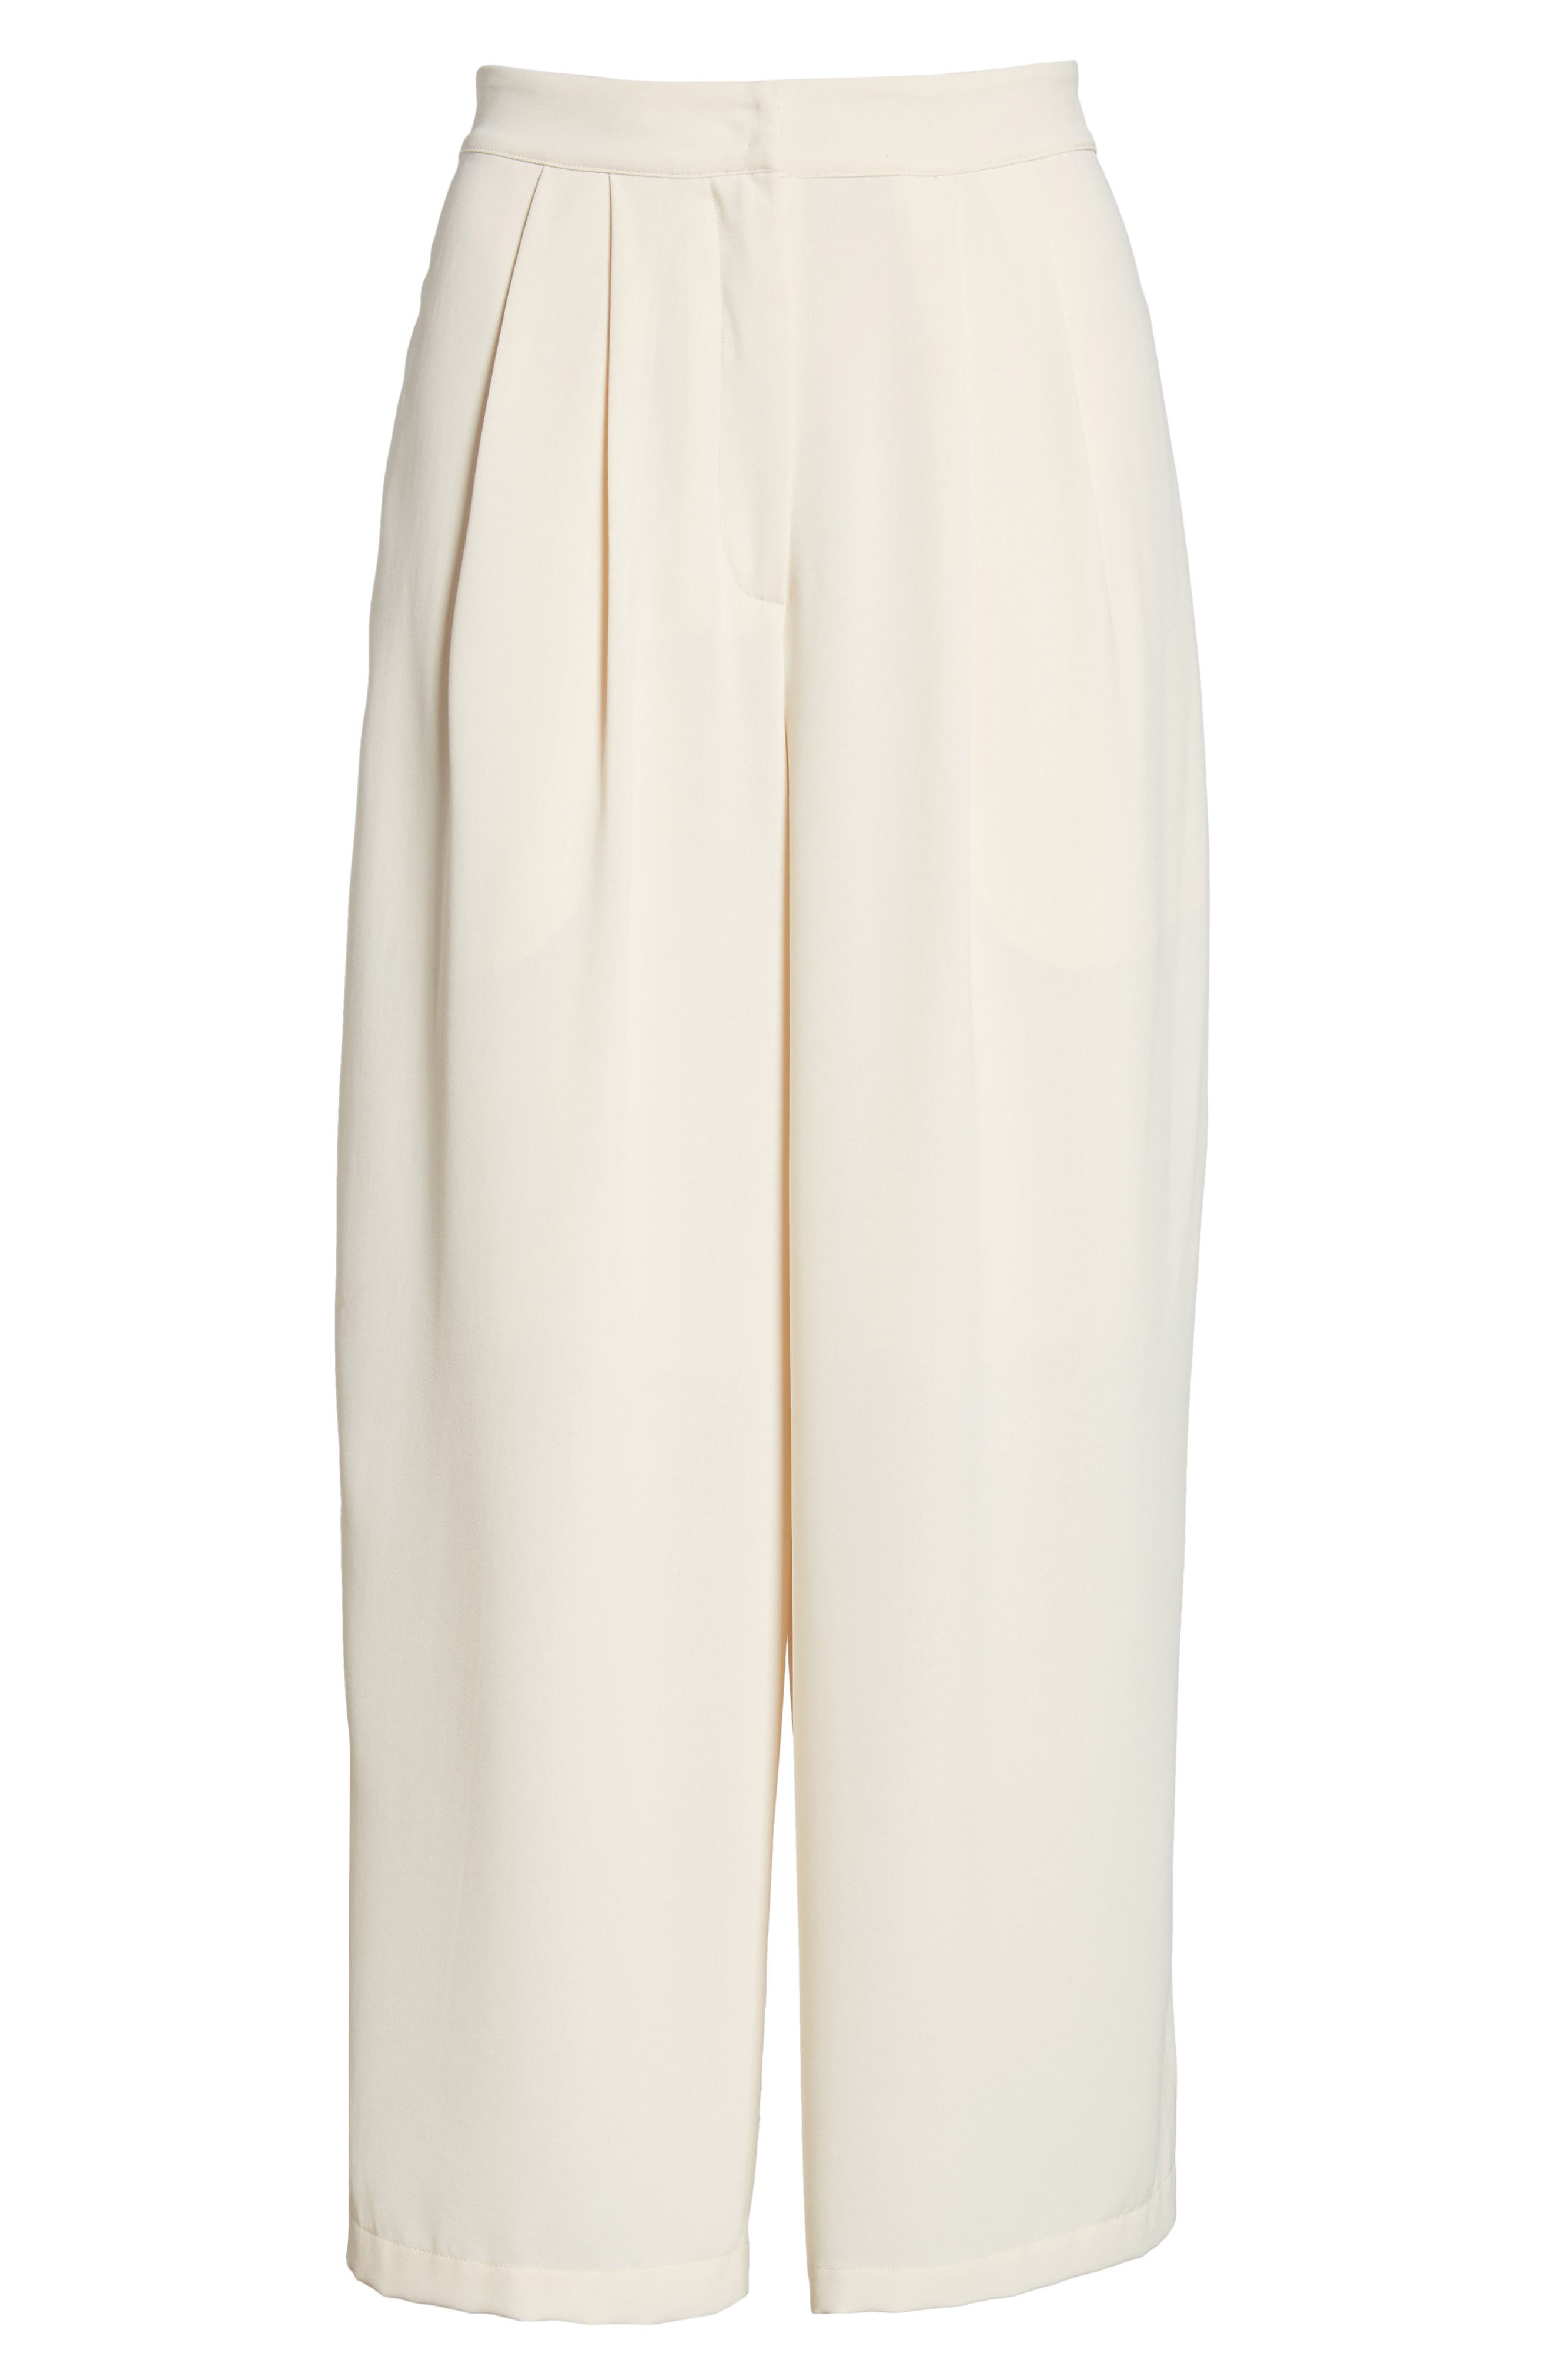 Chriselle x J.O.A. Pleat High Waist Crop Wide Leg Pants,                             Alternate thumbnail 6, color,                             650